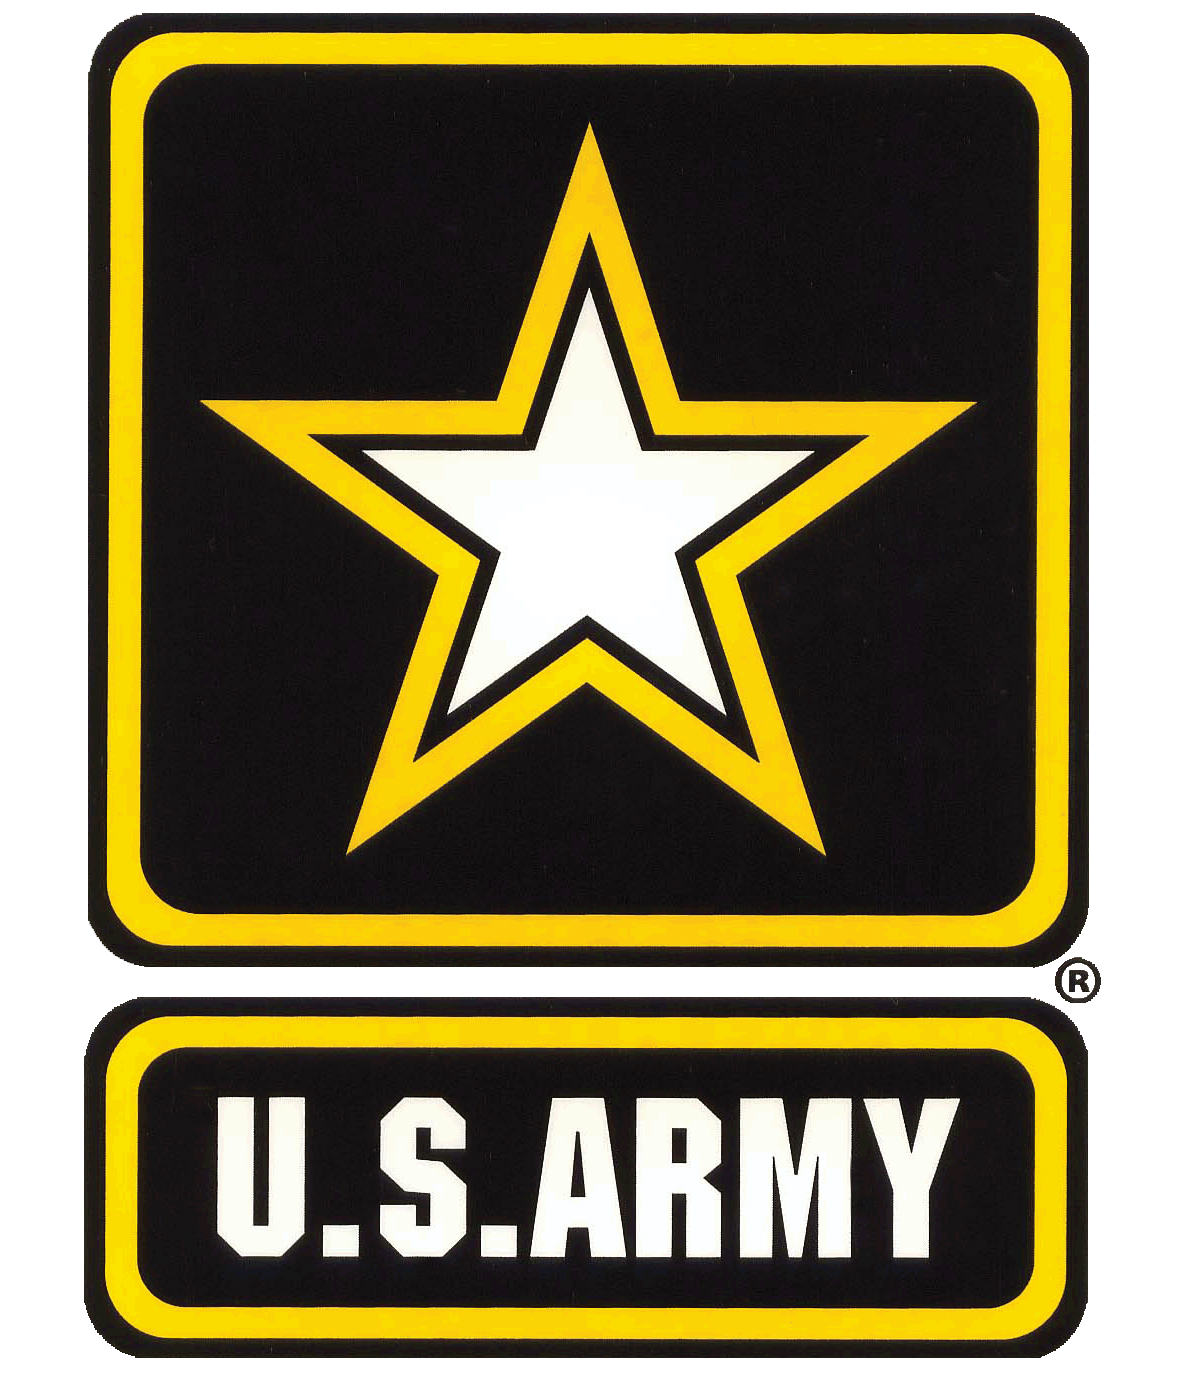 REF Rapid Equipping Force - United States Army